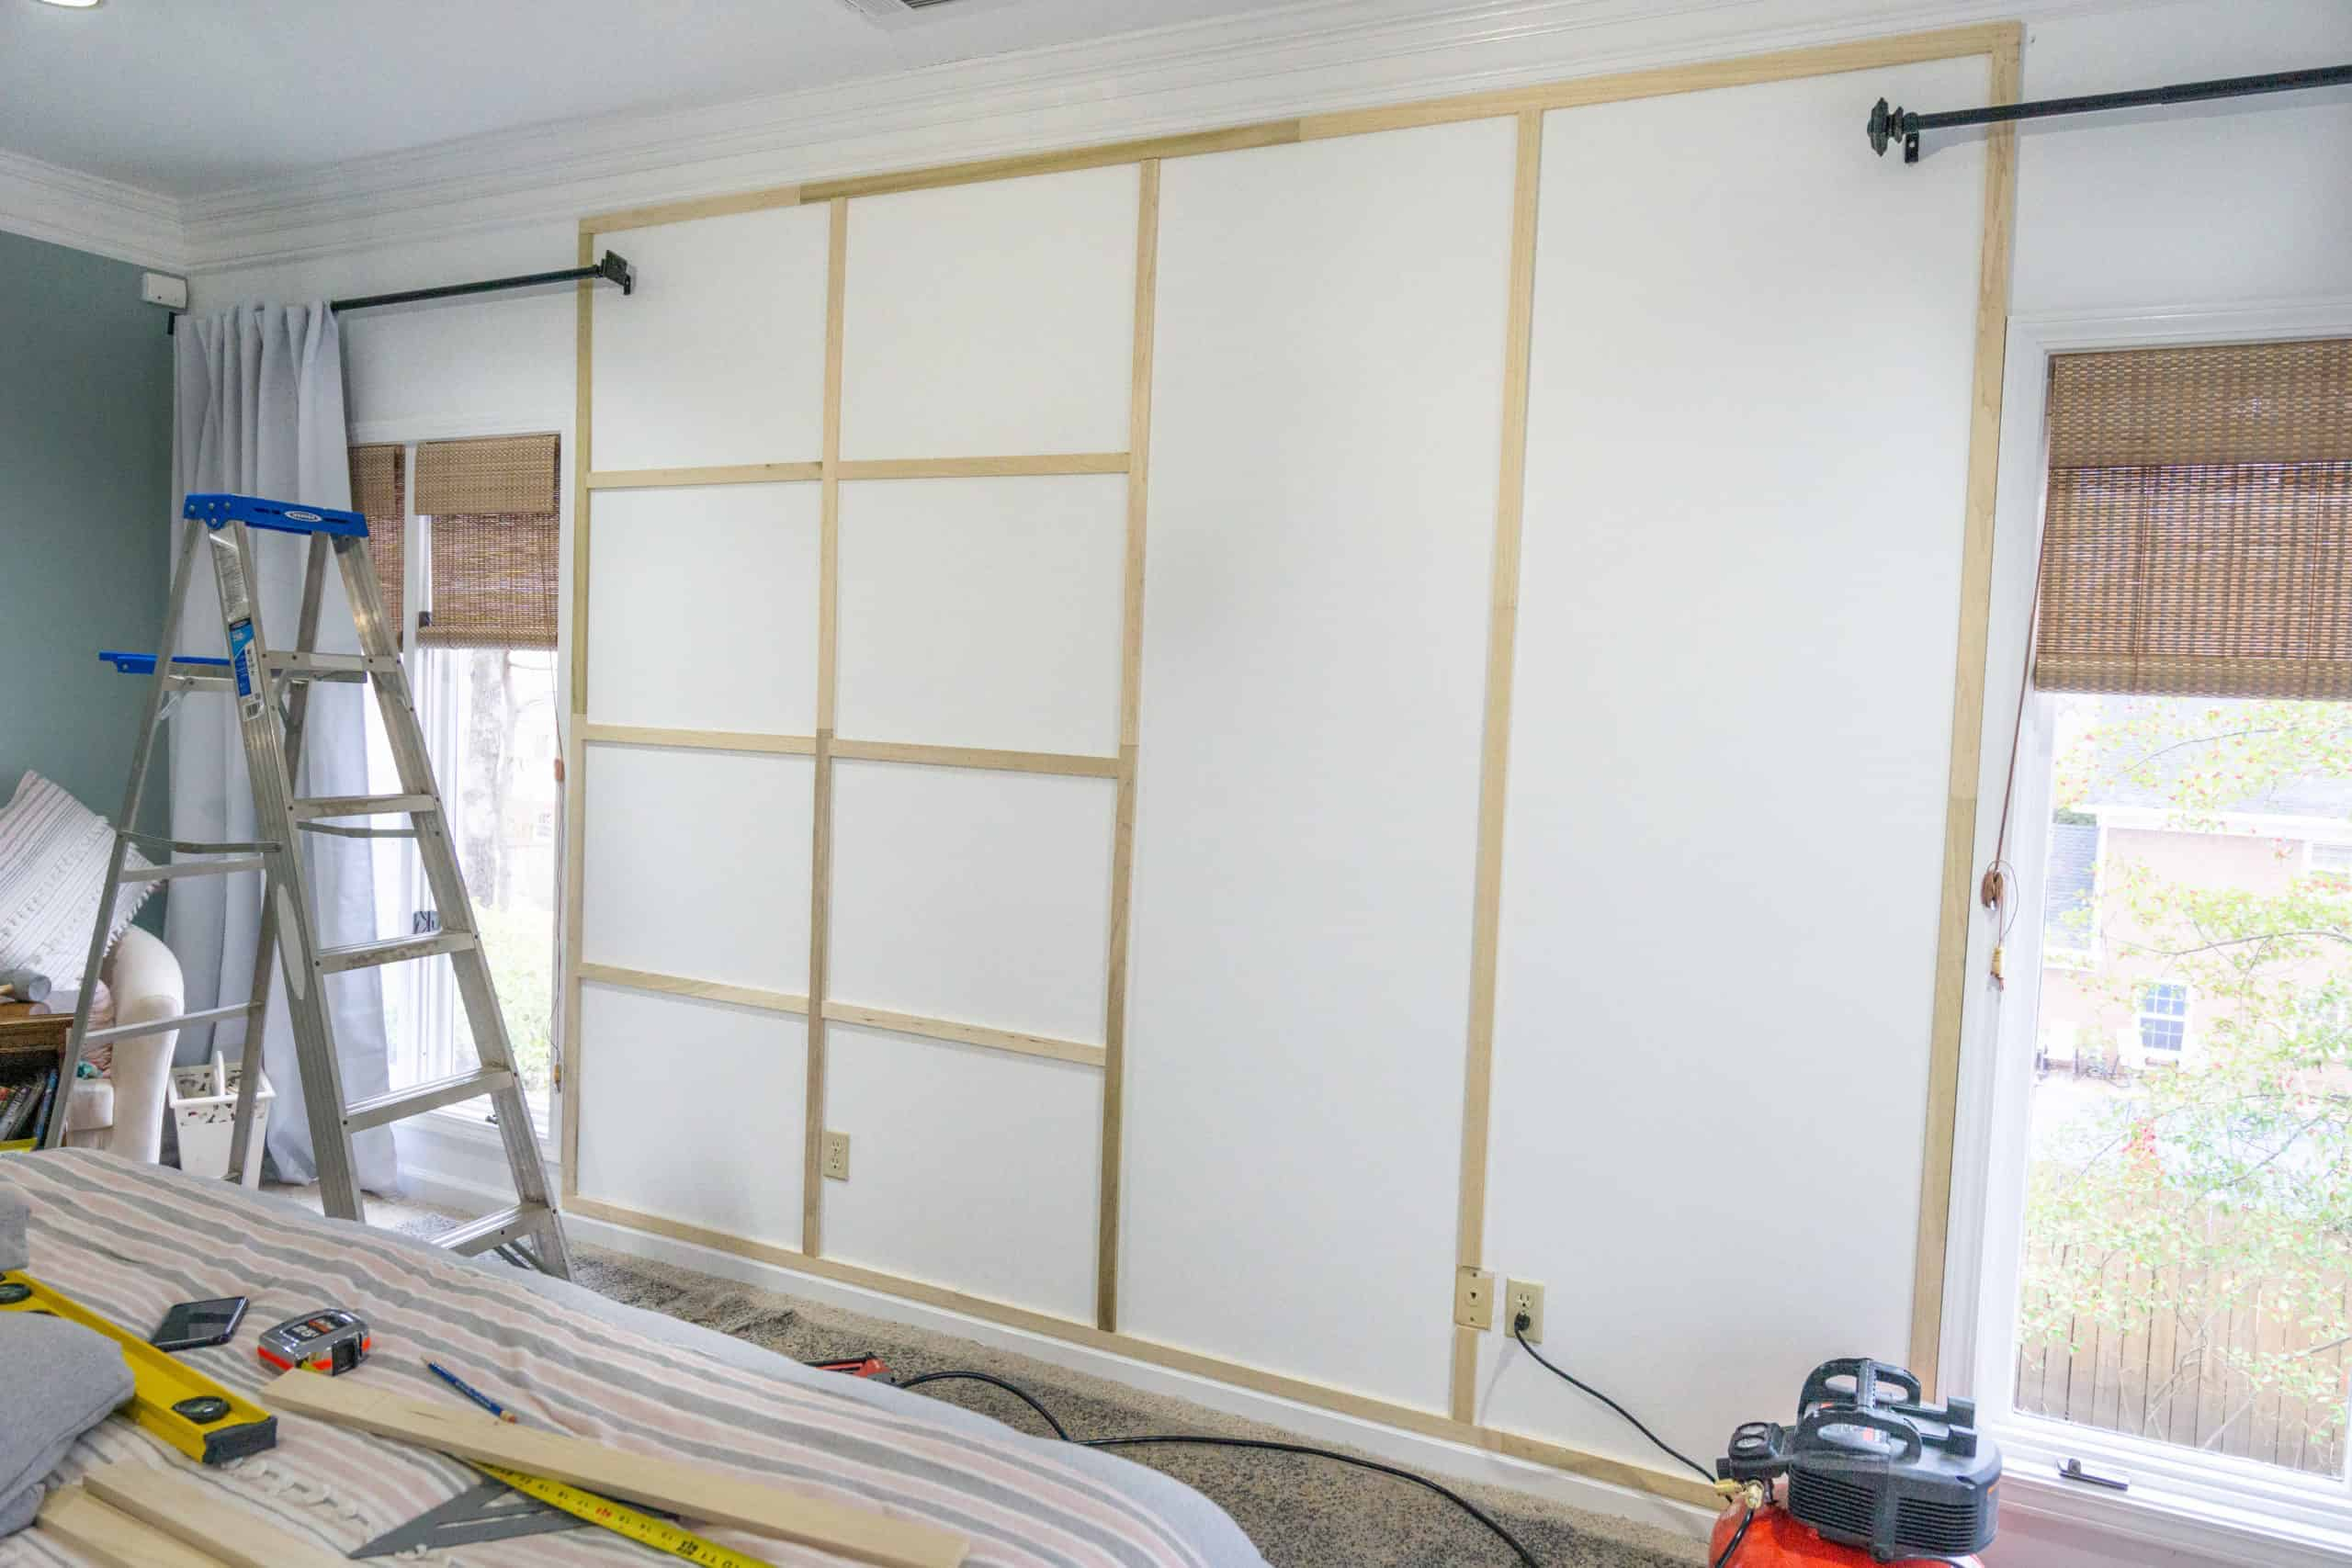 Accent walls can quickly elevate the style of any room.  Let me show you how to easily install a wood trim accent wall.